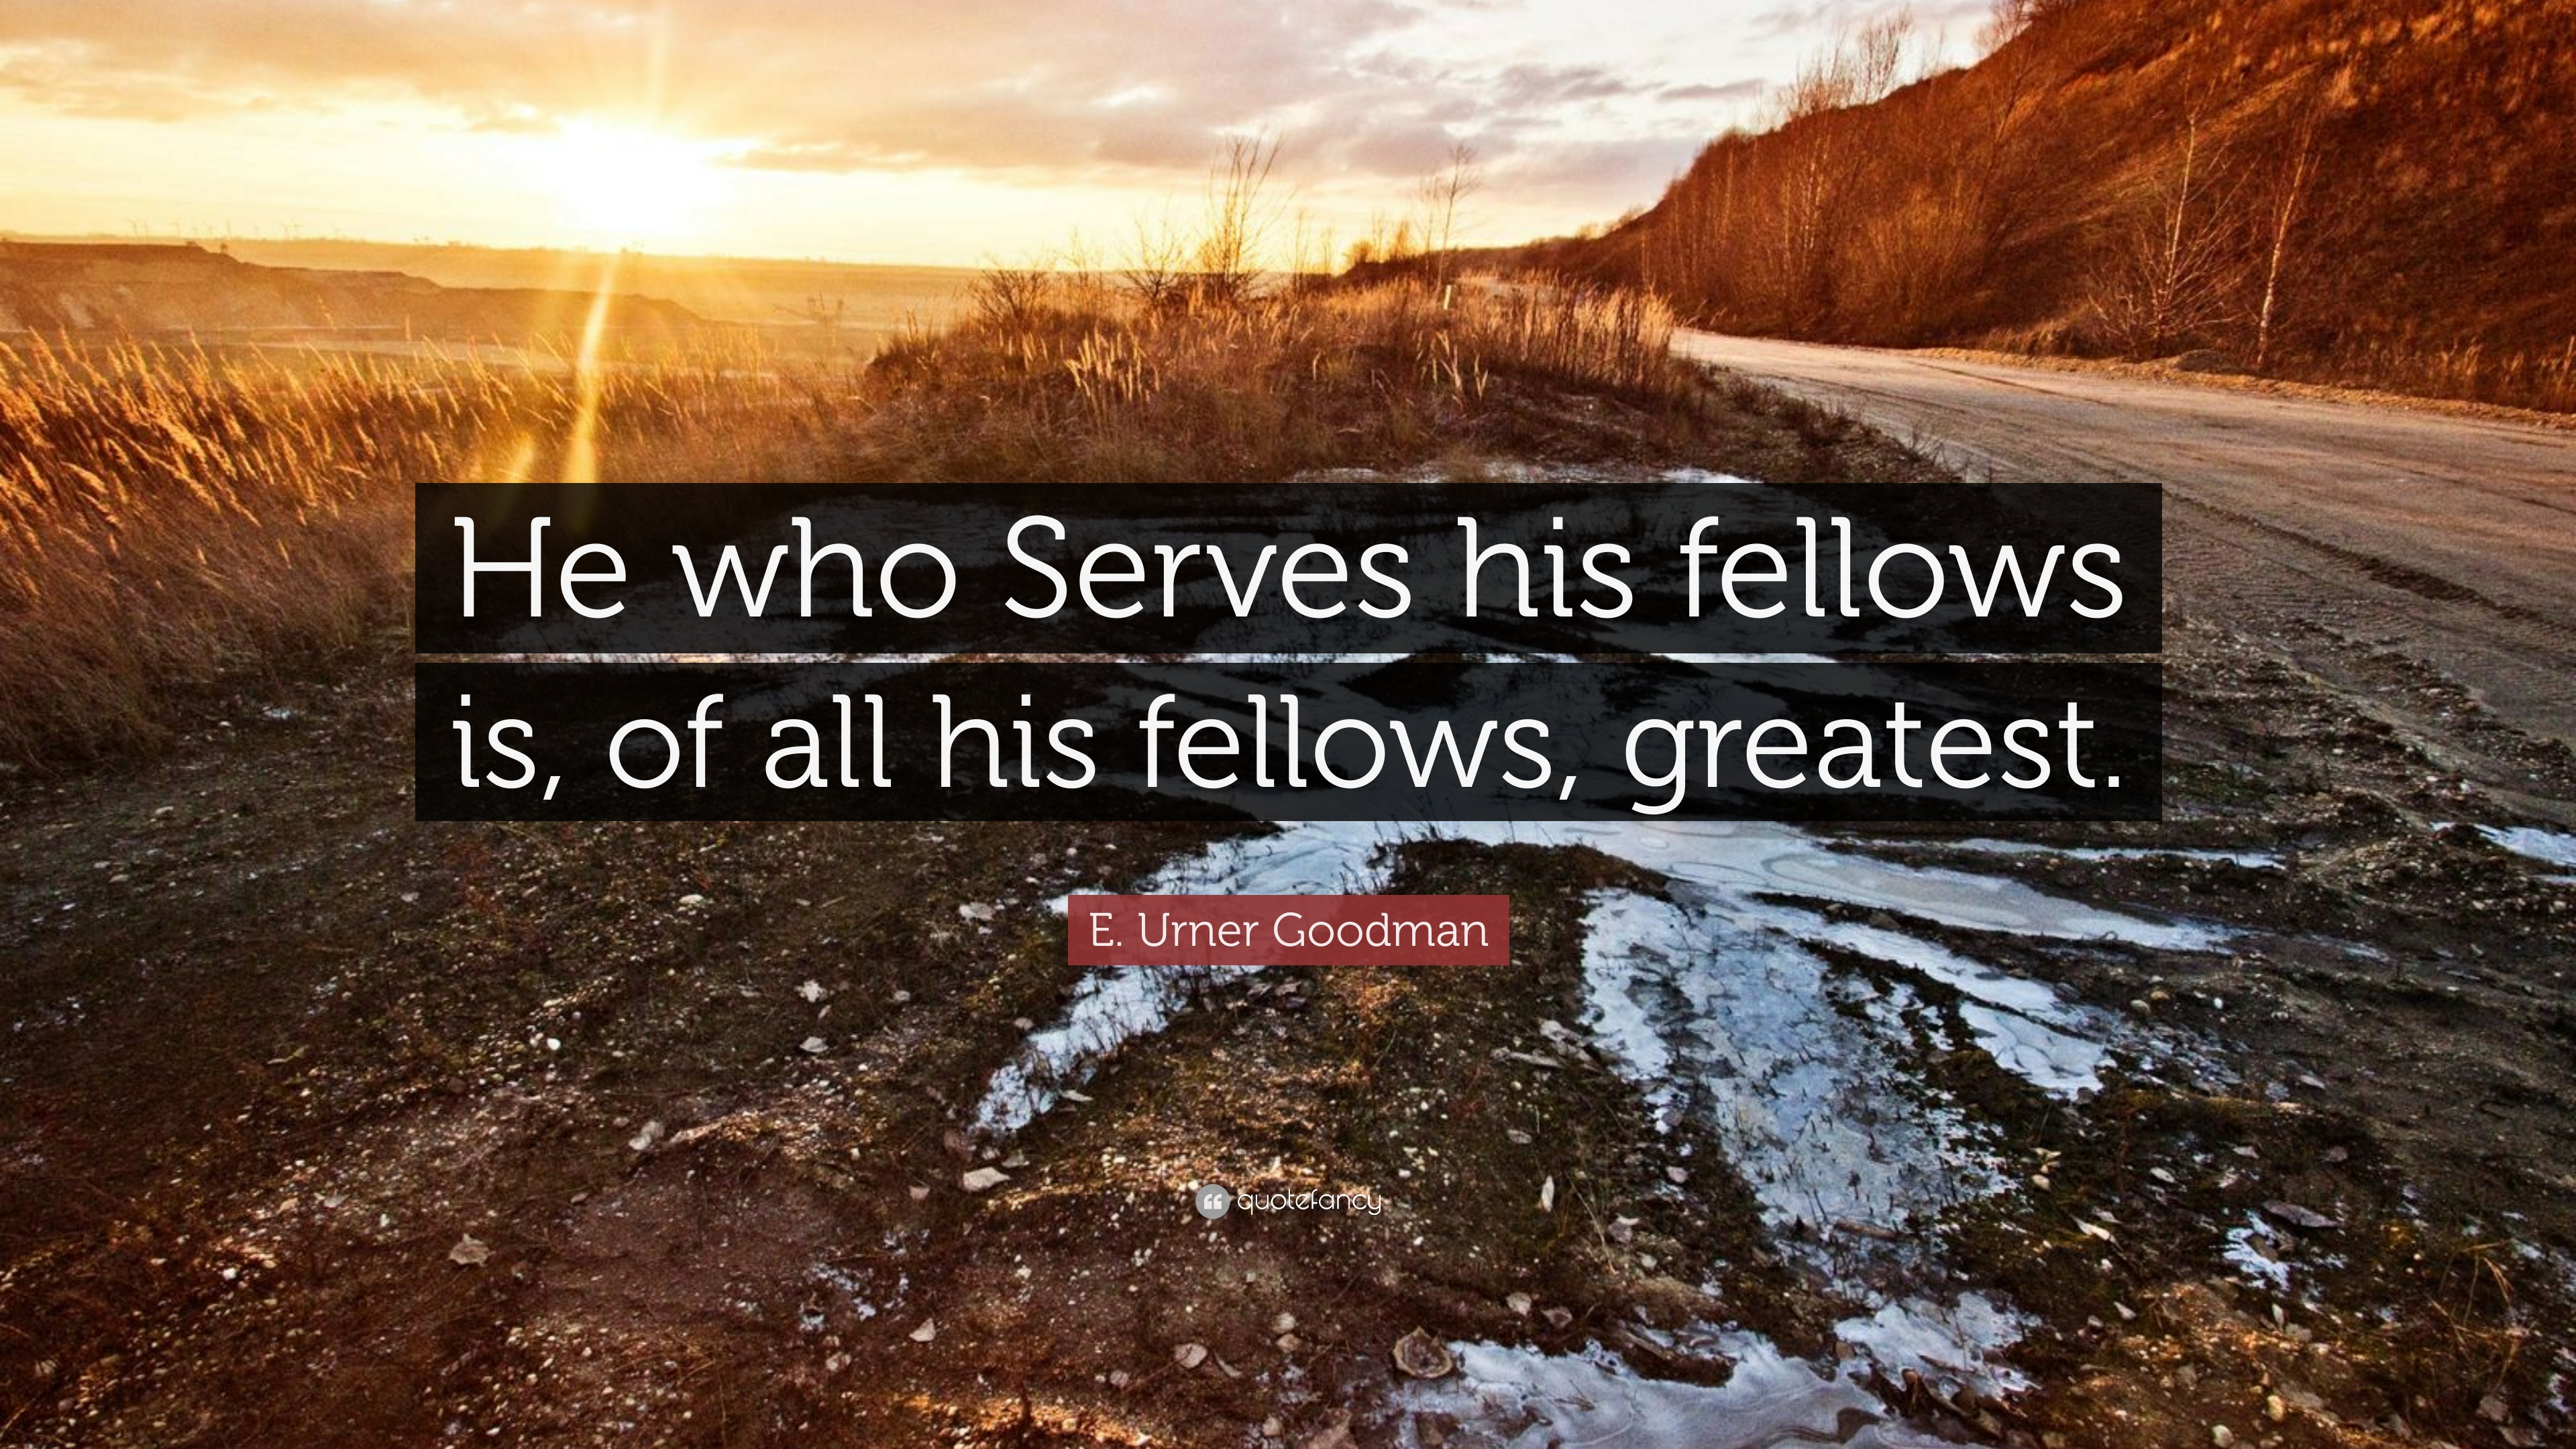 E Urner Goodman Quote He Who Serves His Fellows Is Of All His